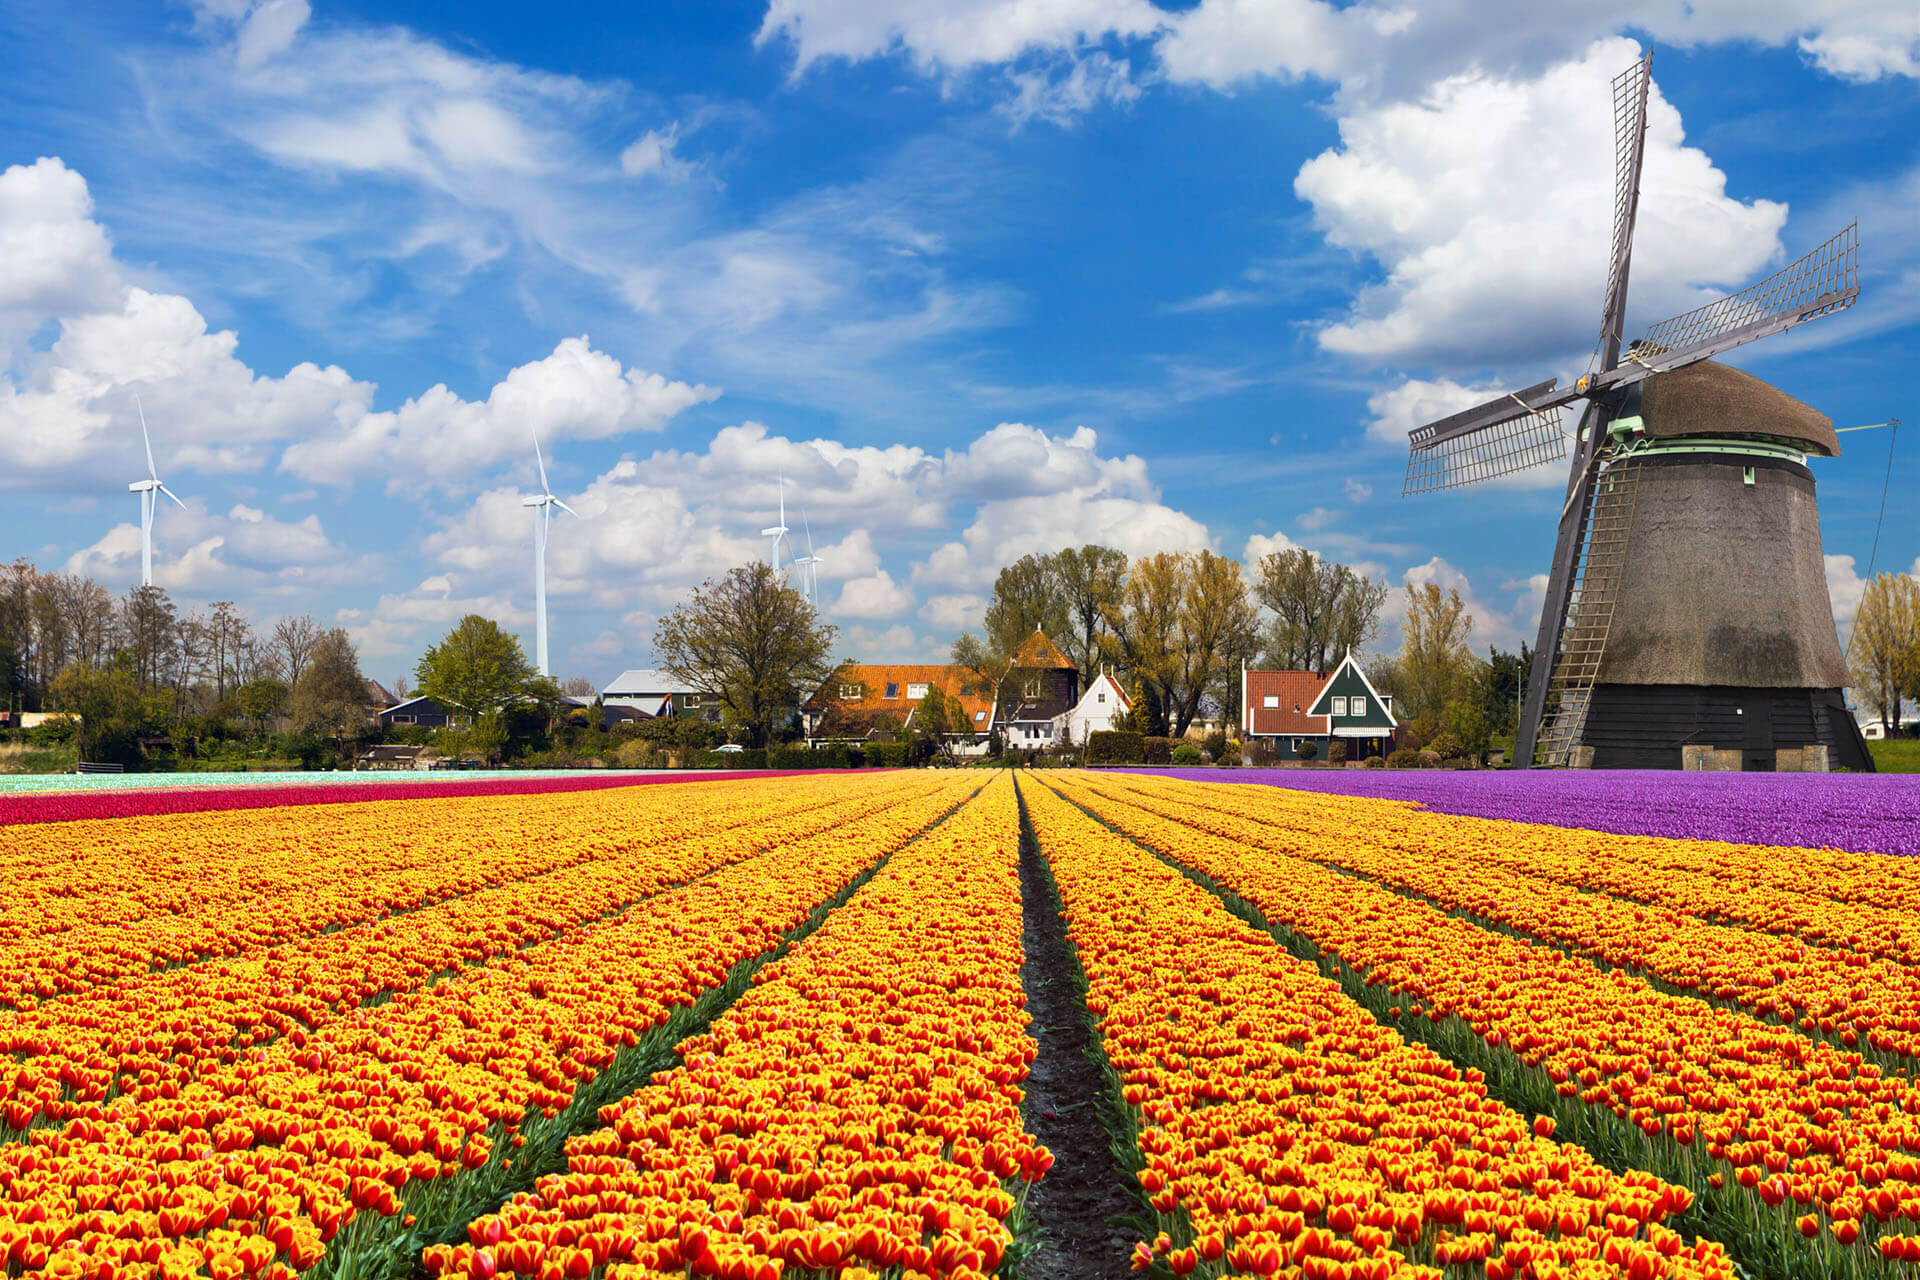 Netherlands: Quarantine Requirements for Vaccinated Travelers Removed